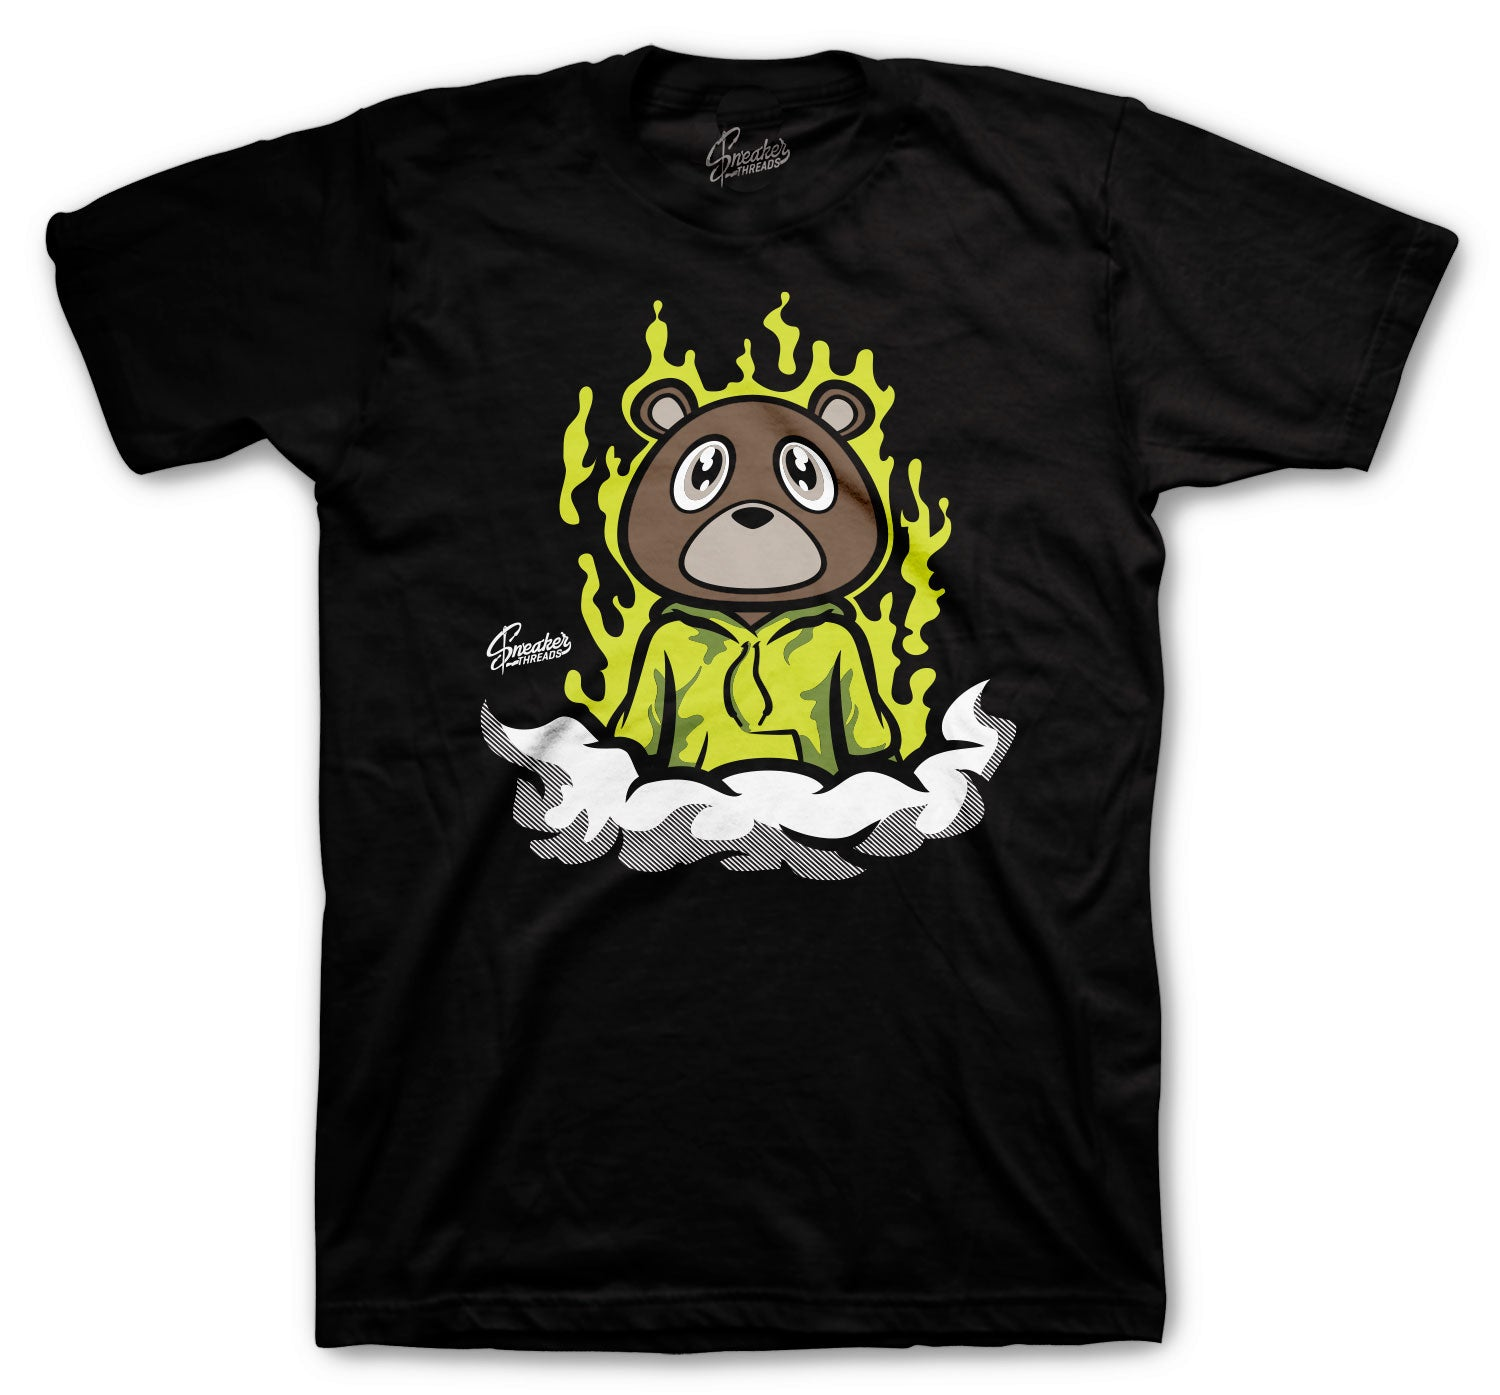 Yeezy Yeezreel Fly Bear Shirts